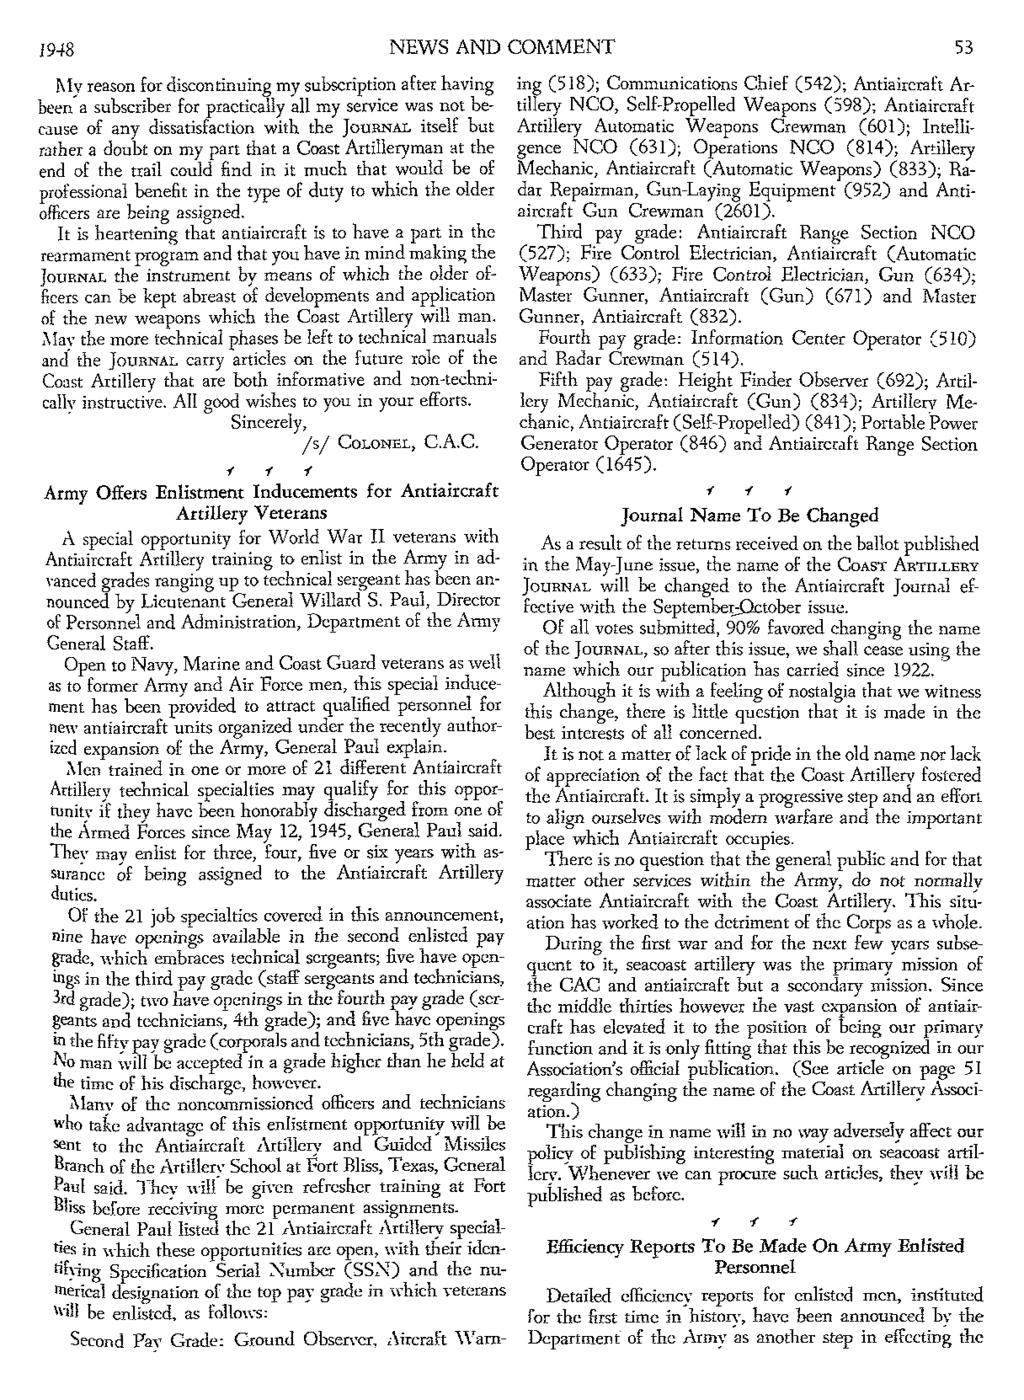 1948 NEWS AND COMMENT 53 :l\lvreason for discontinuing my subscription after having been' a subscriber for practically all my service was not because of any dissatisfaction with the JOURNALitself but